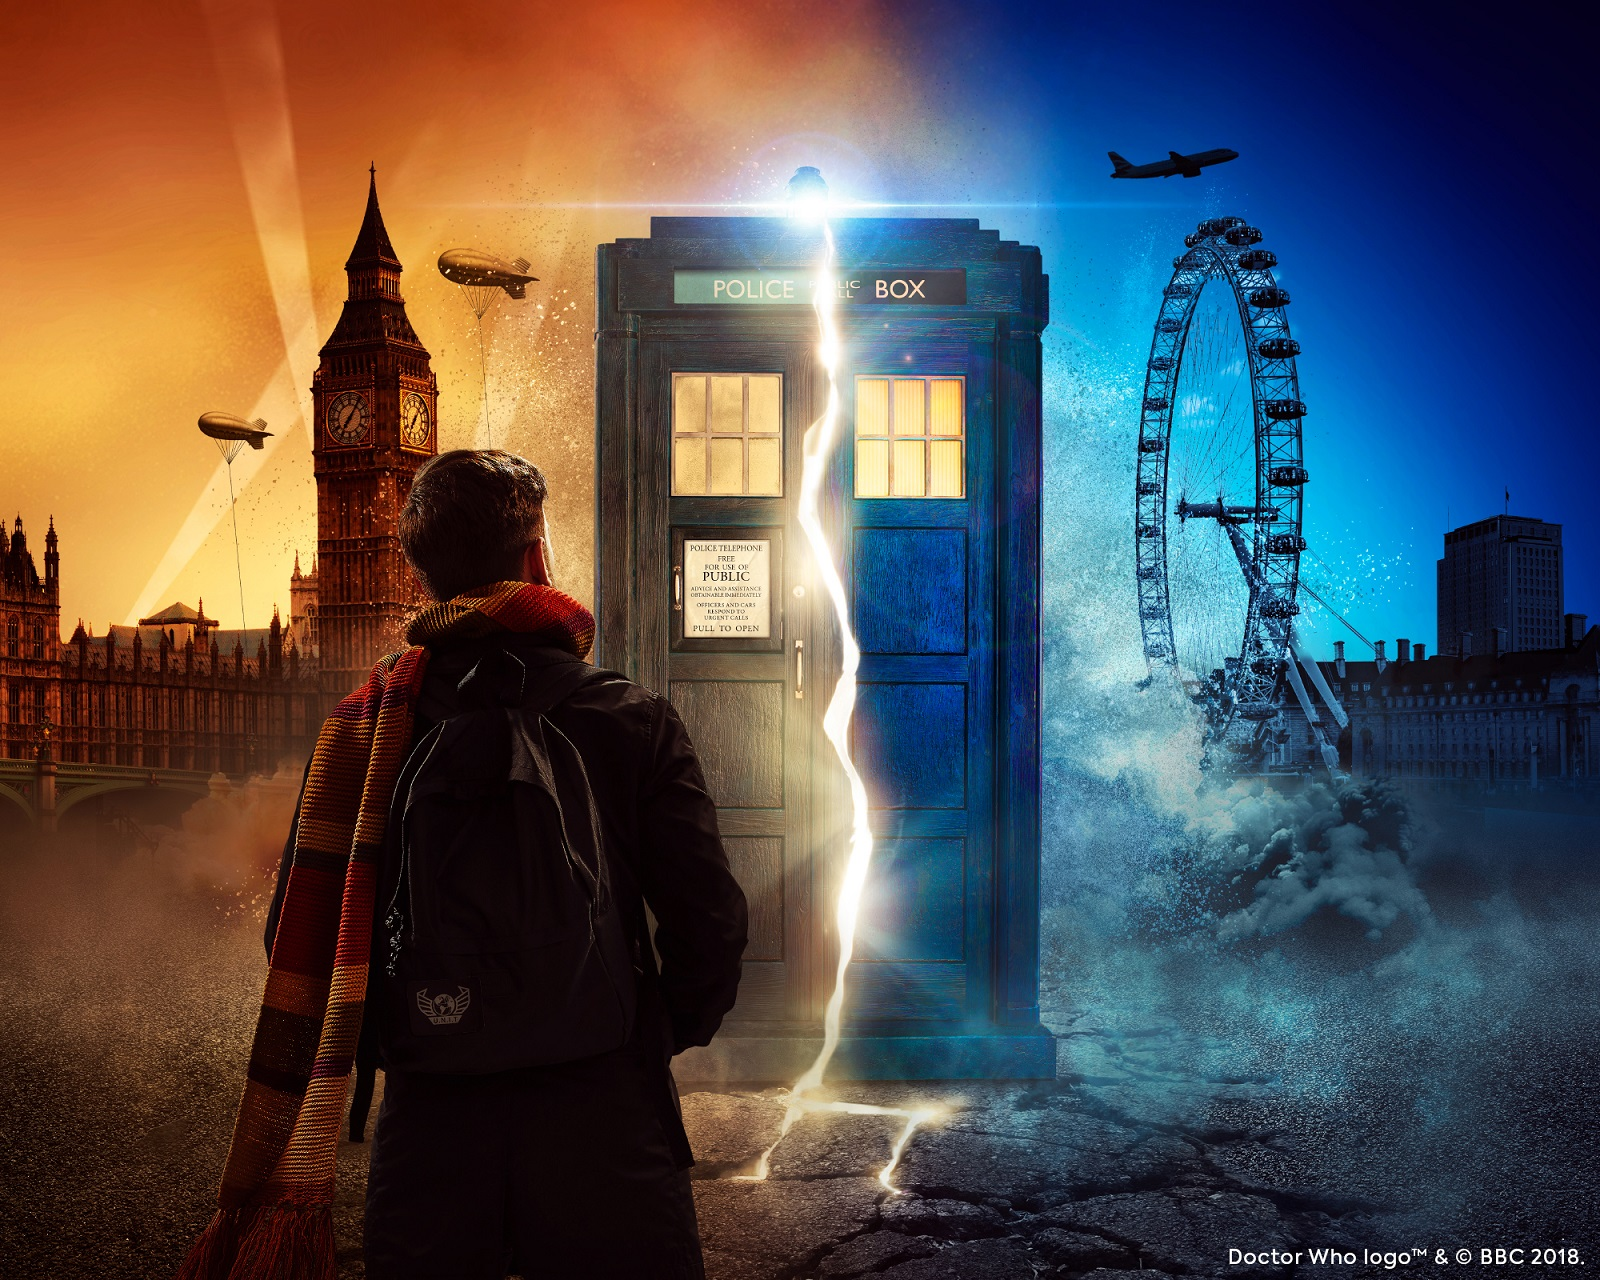 Just What is Doctor Who: Time Fracture?